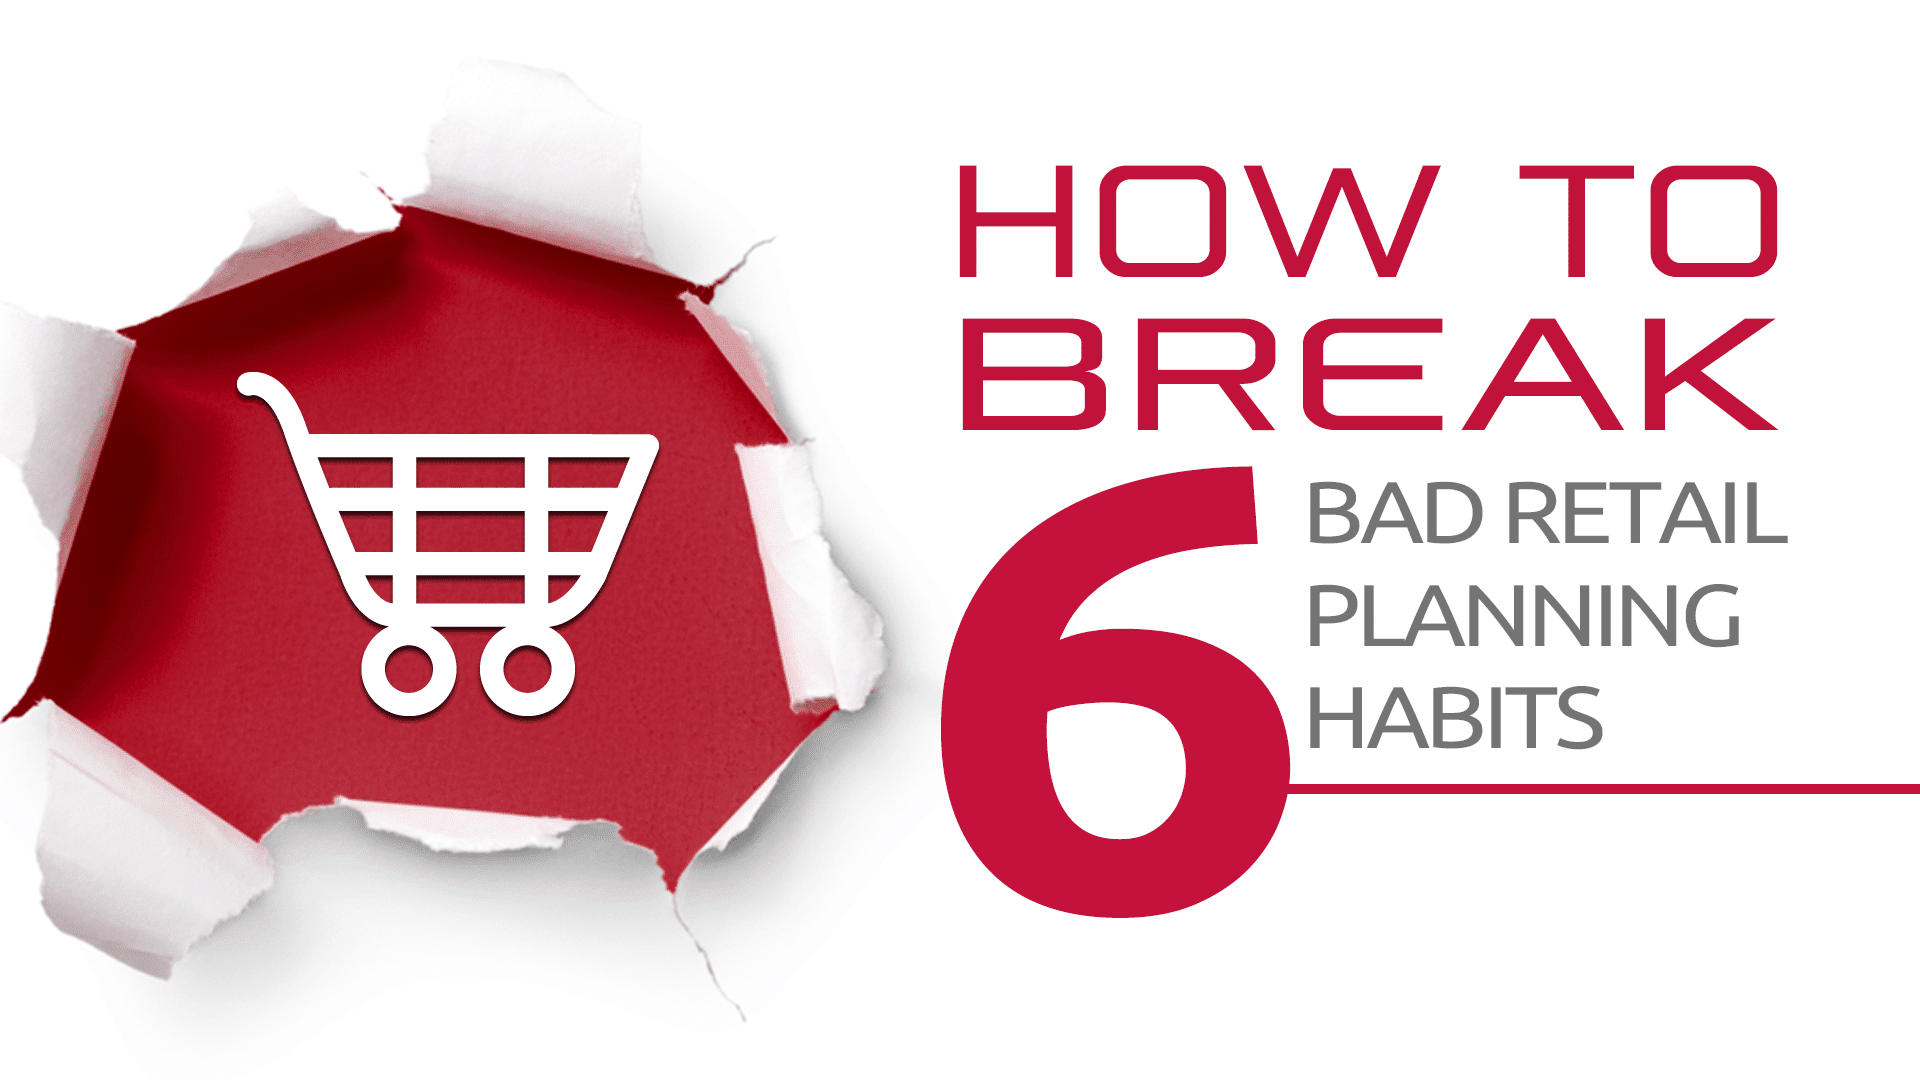 How to Break 6 Bad Retail Planning Habits